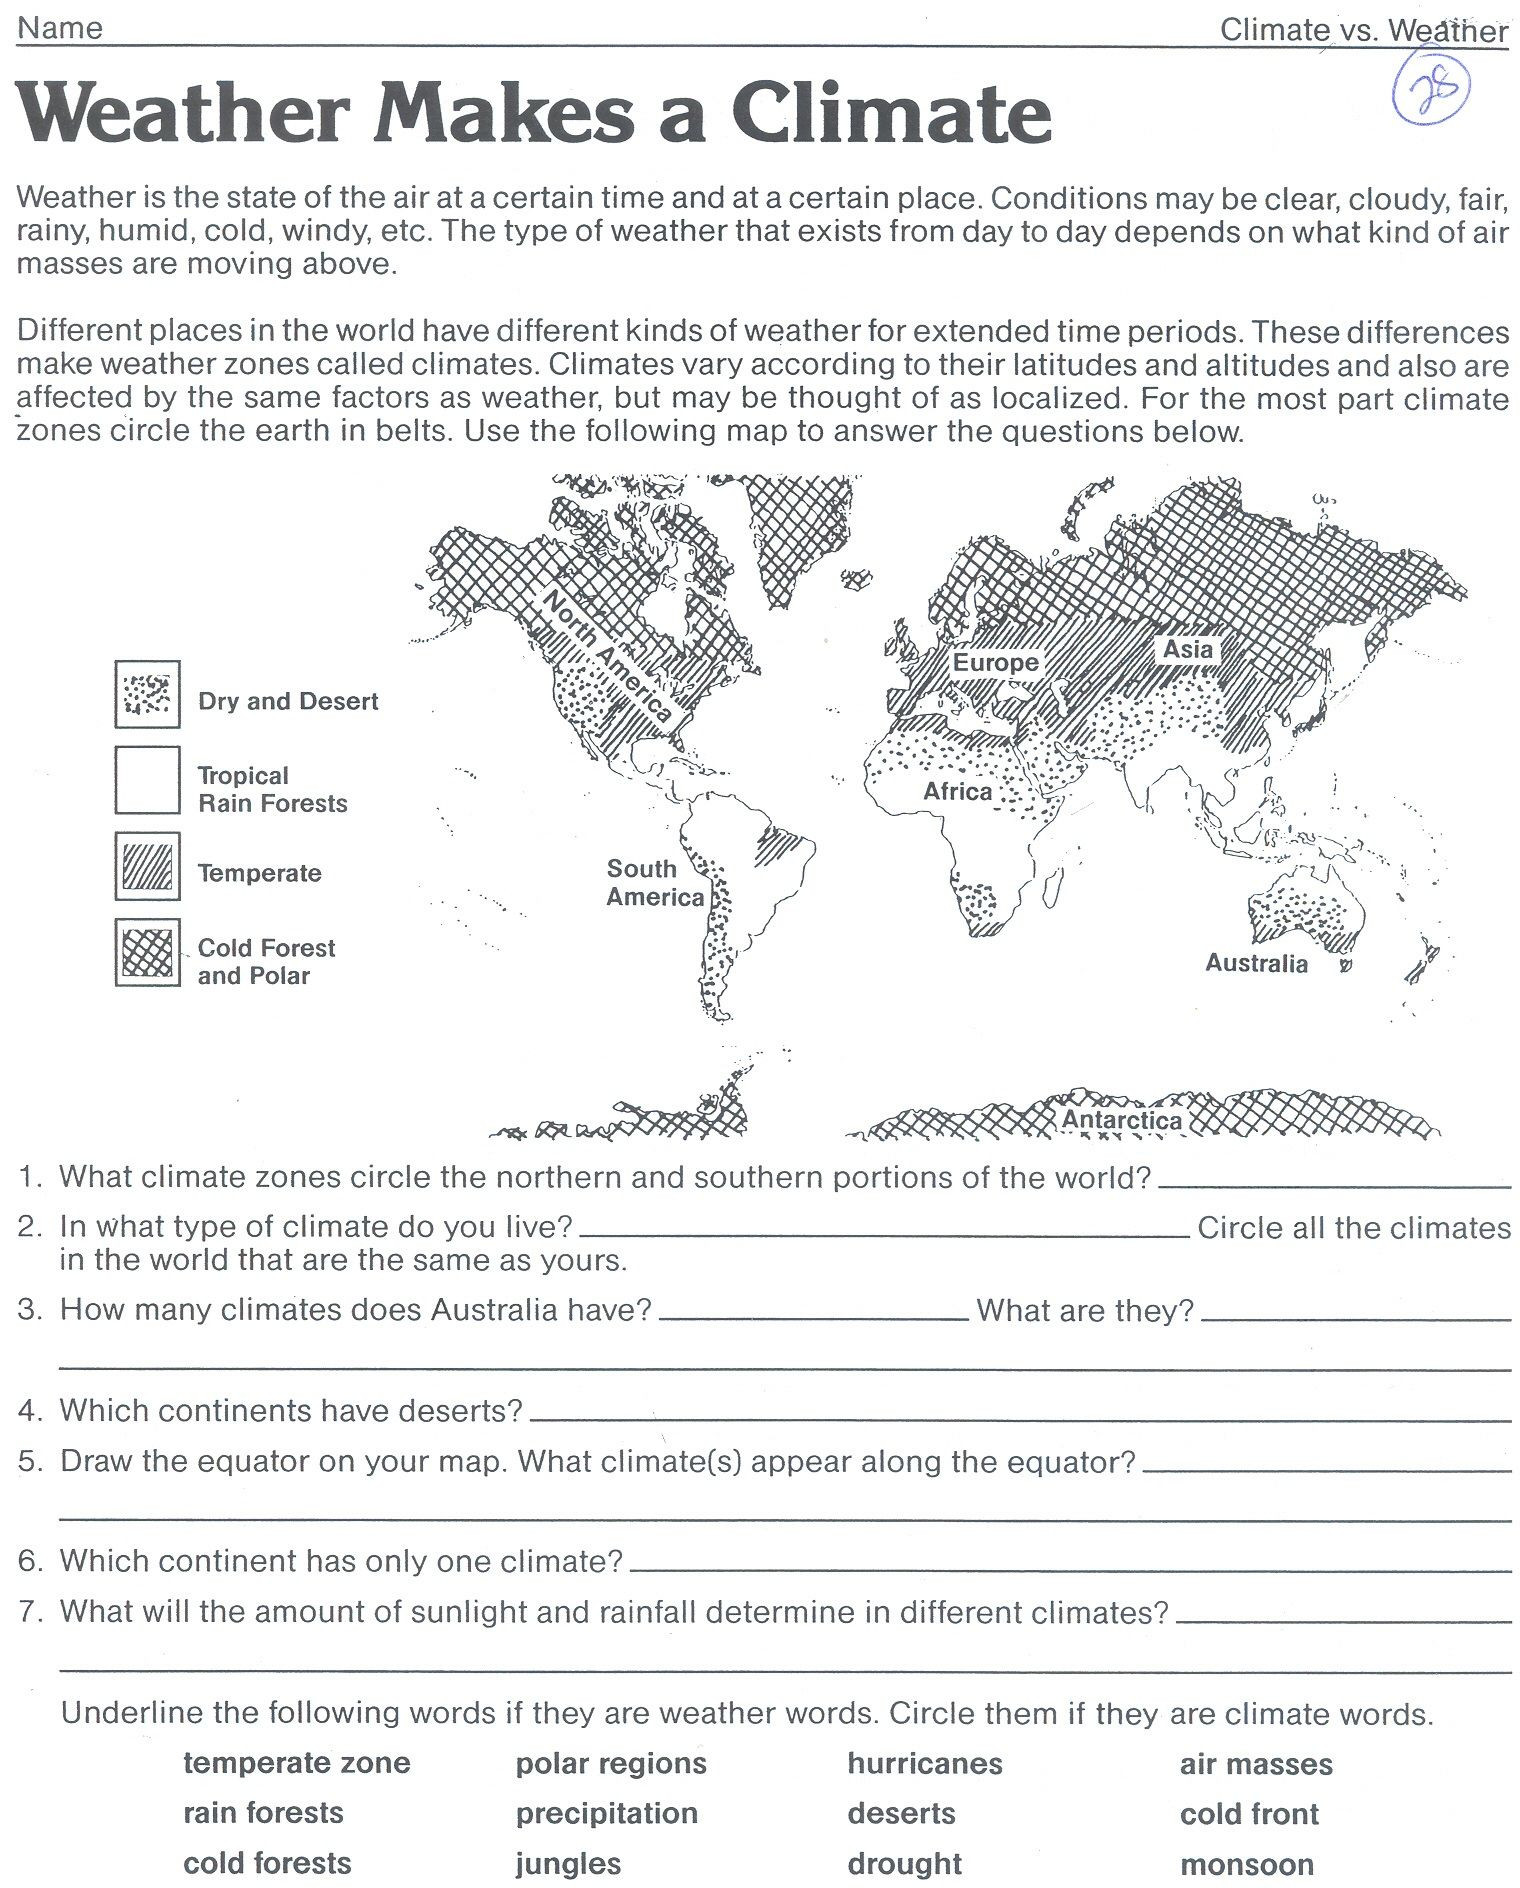 Geography Worksheets Middle School Weather Makes A Climate Worksheet